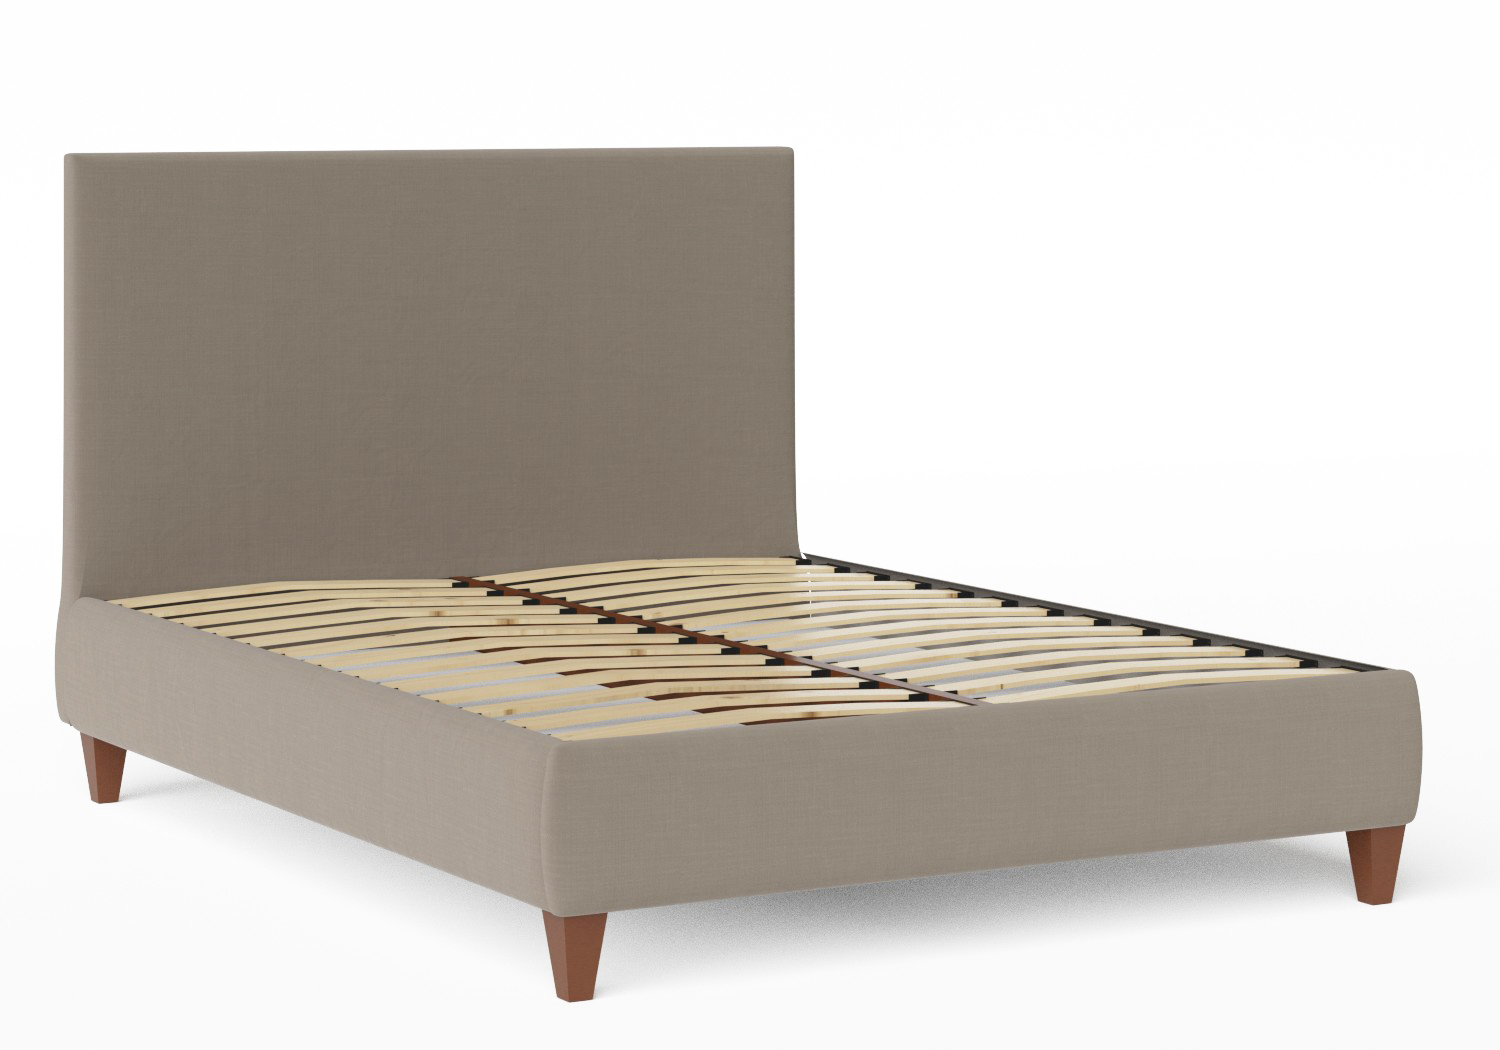 Yushan Upholstered Bed in Grey fabric shown with slatted frame